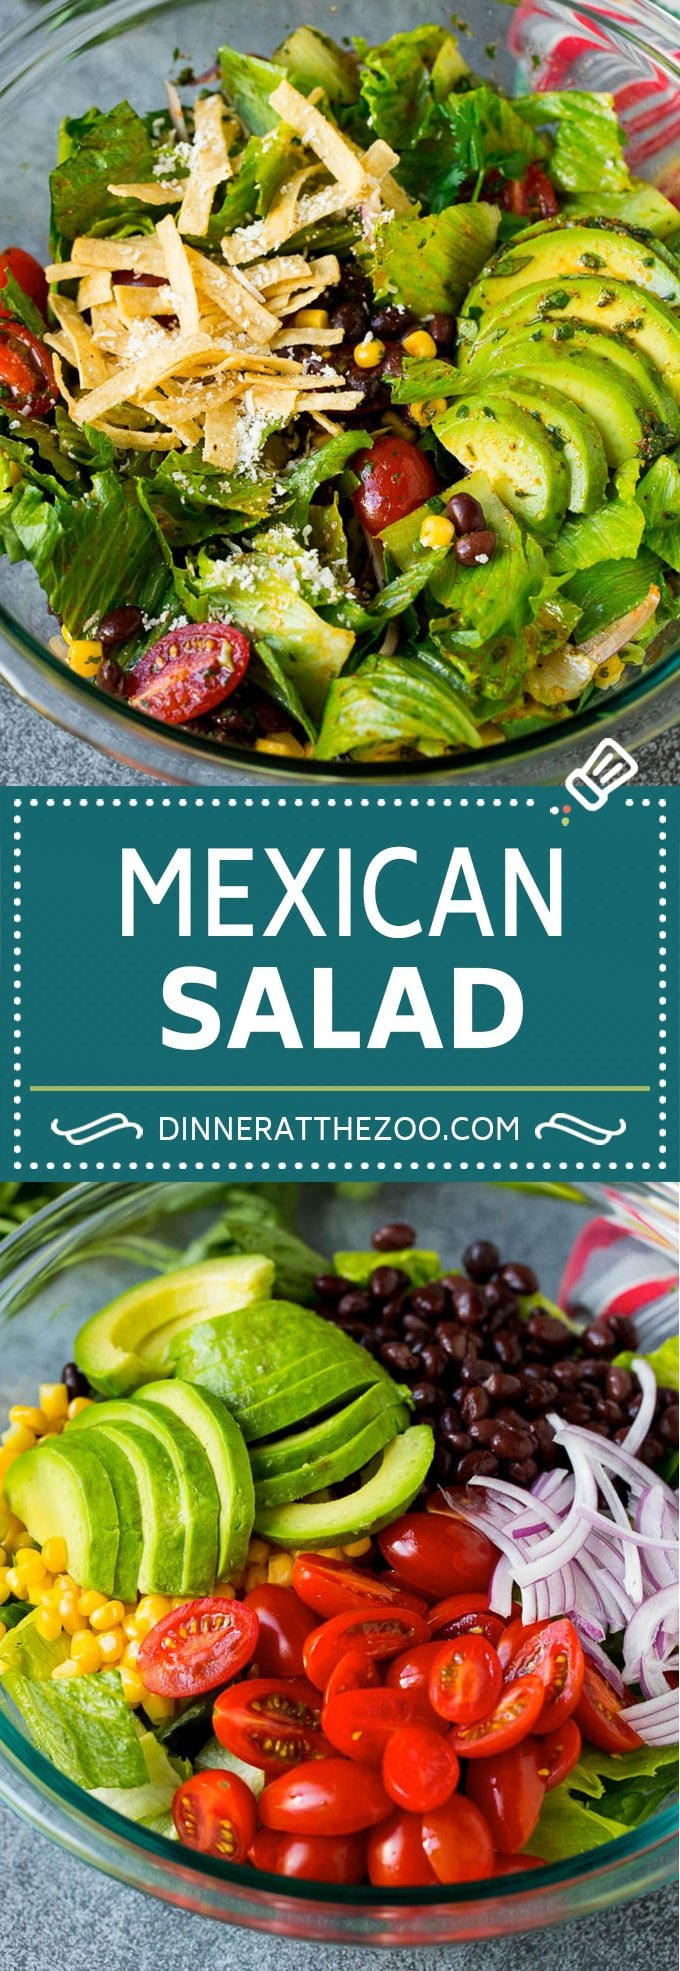 Mexican Salad Recipe #salad #corn #beans #avocado #tomatoes #dinneratthezoo